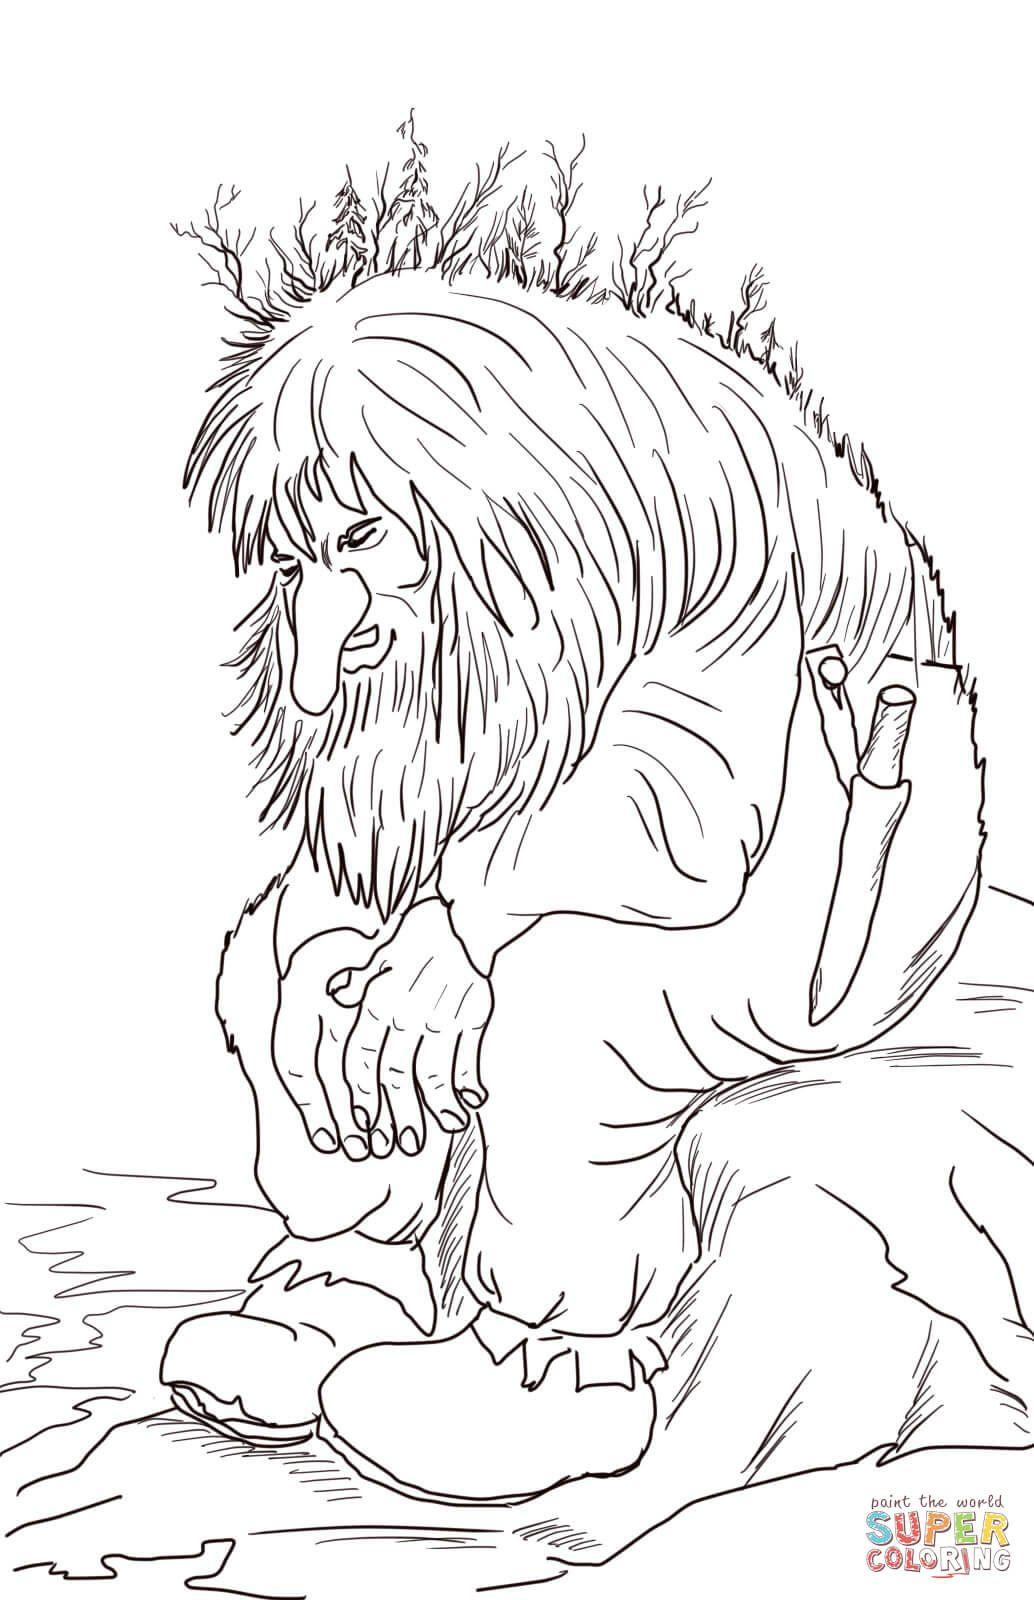 Norwegian Troll Super Coloring Lineart Fantasy Coloring Pages